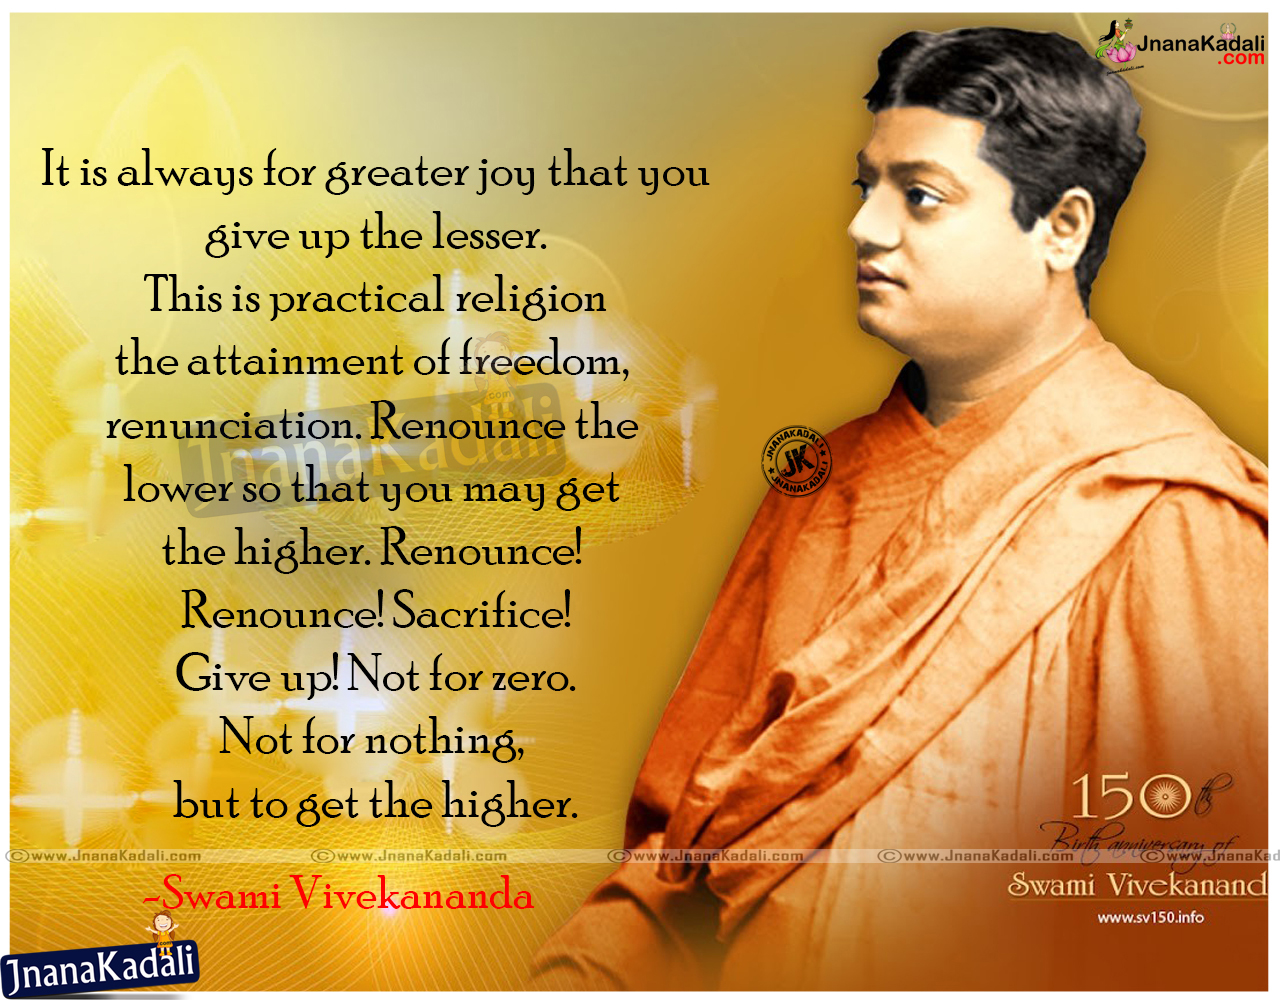 640 Words Essay on Swami Vivekanand: A Model of Inspiration for the Young